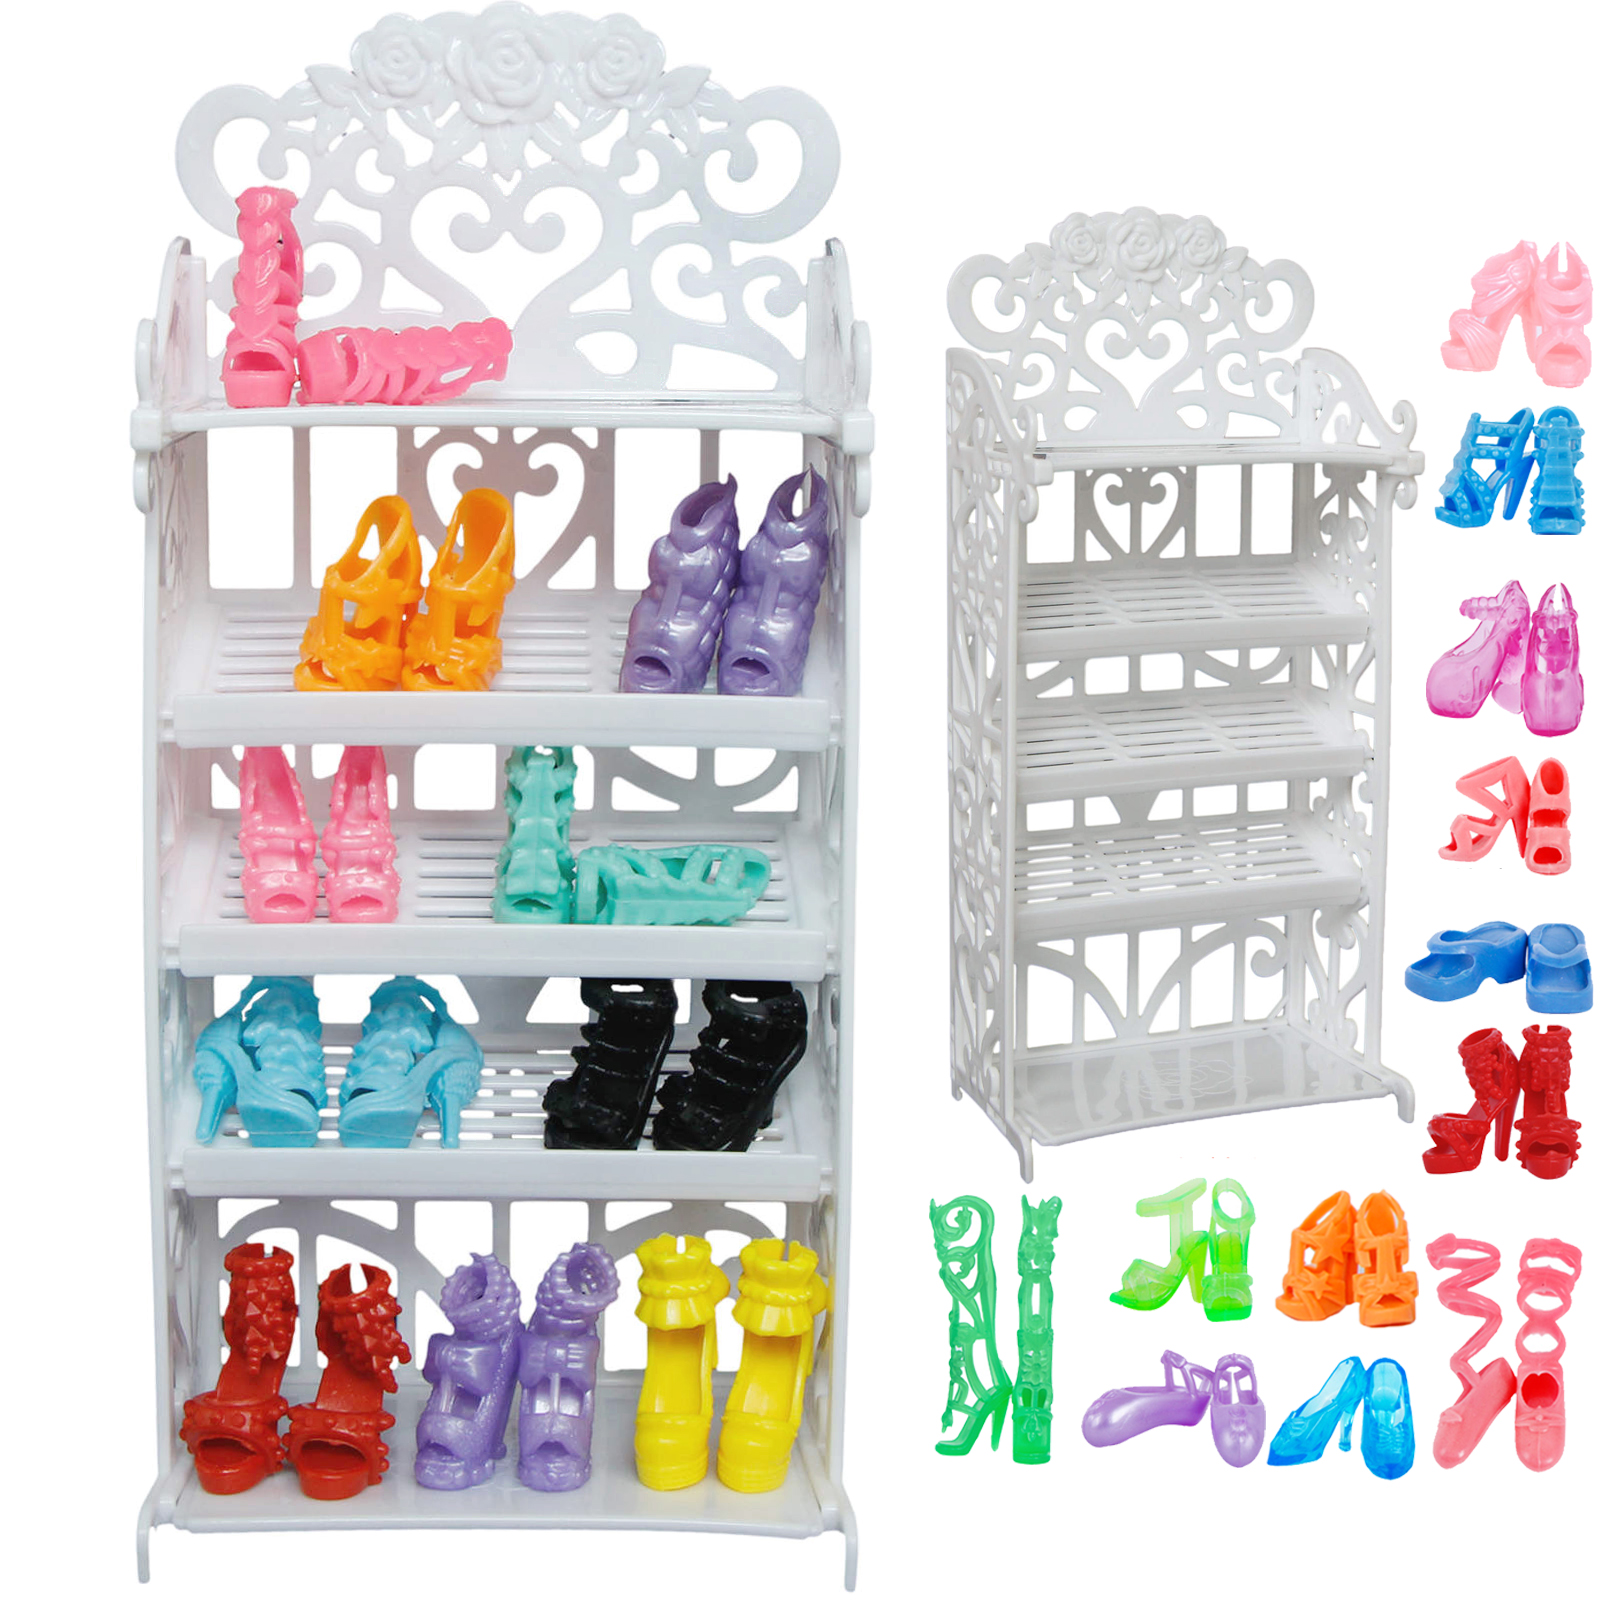 1x Plastic White Doll Shoes Rack / Random 12 Pairs Shoes Dollhouse Furniture Accessories for Barbie Doll Kids Toy(China)